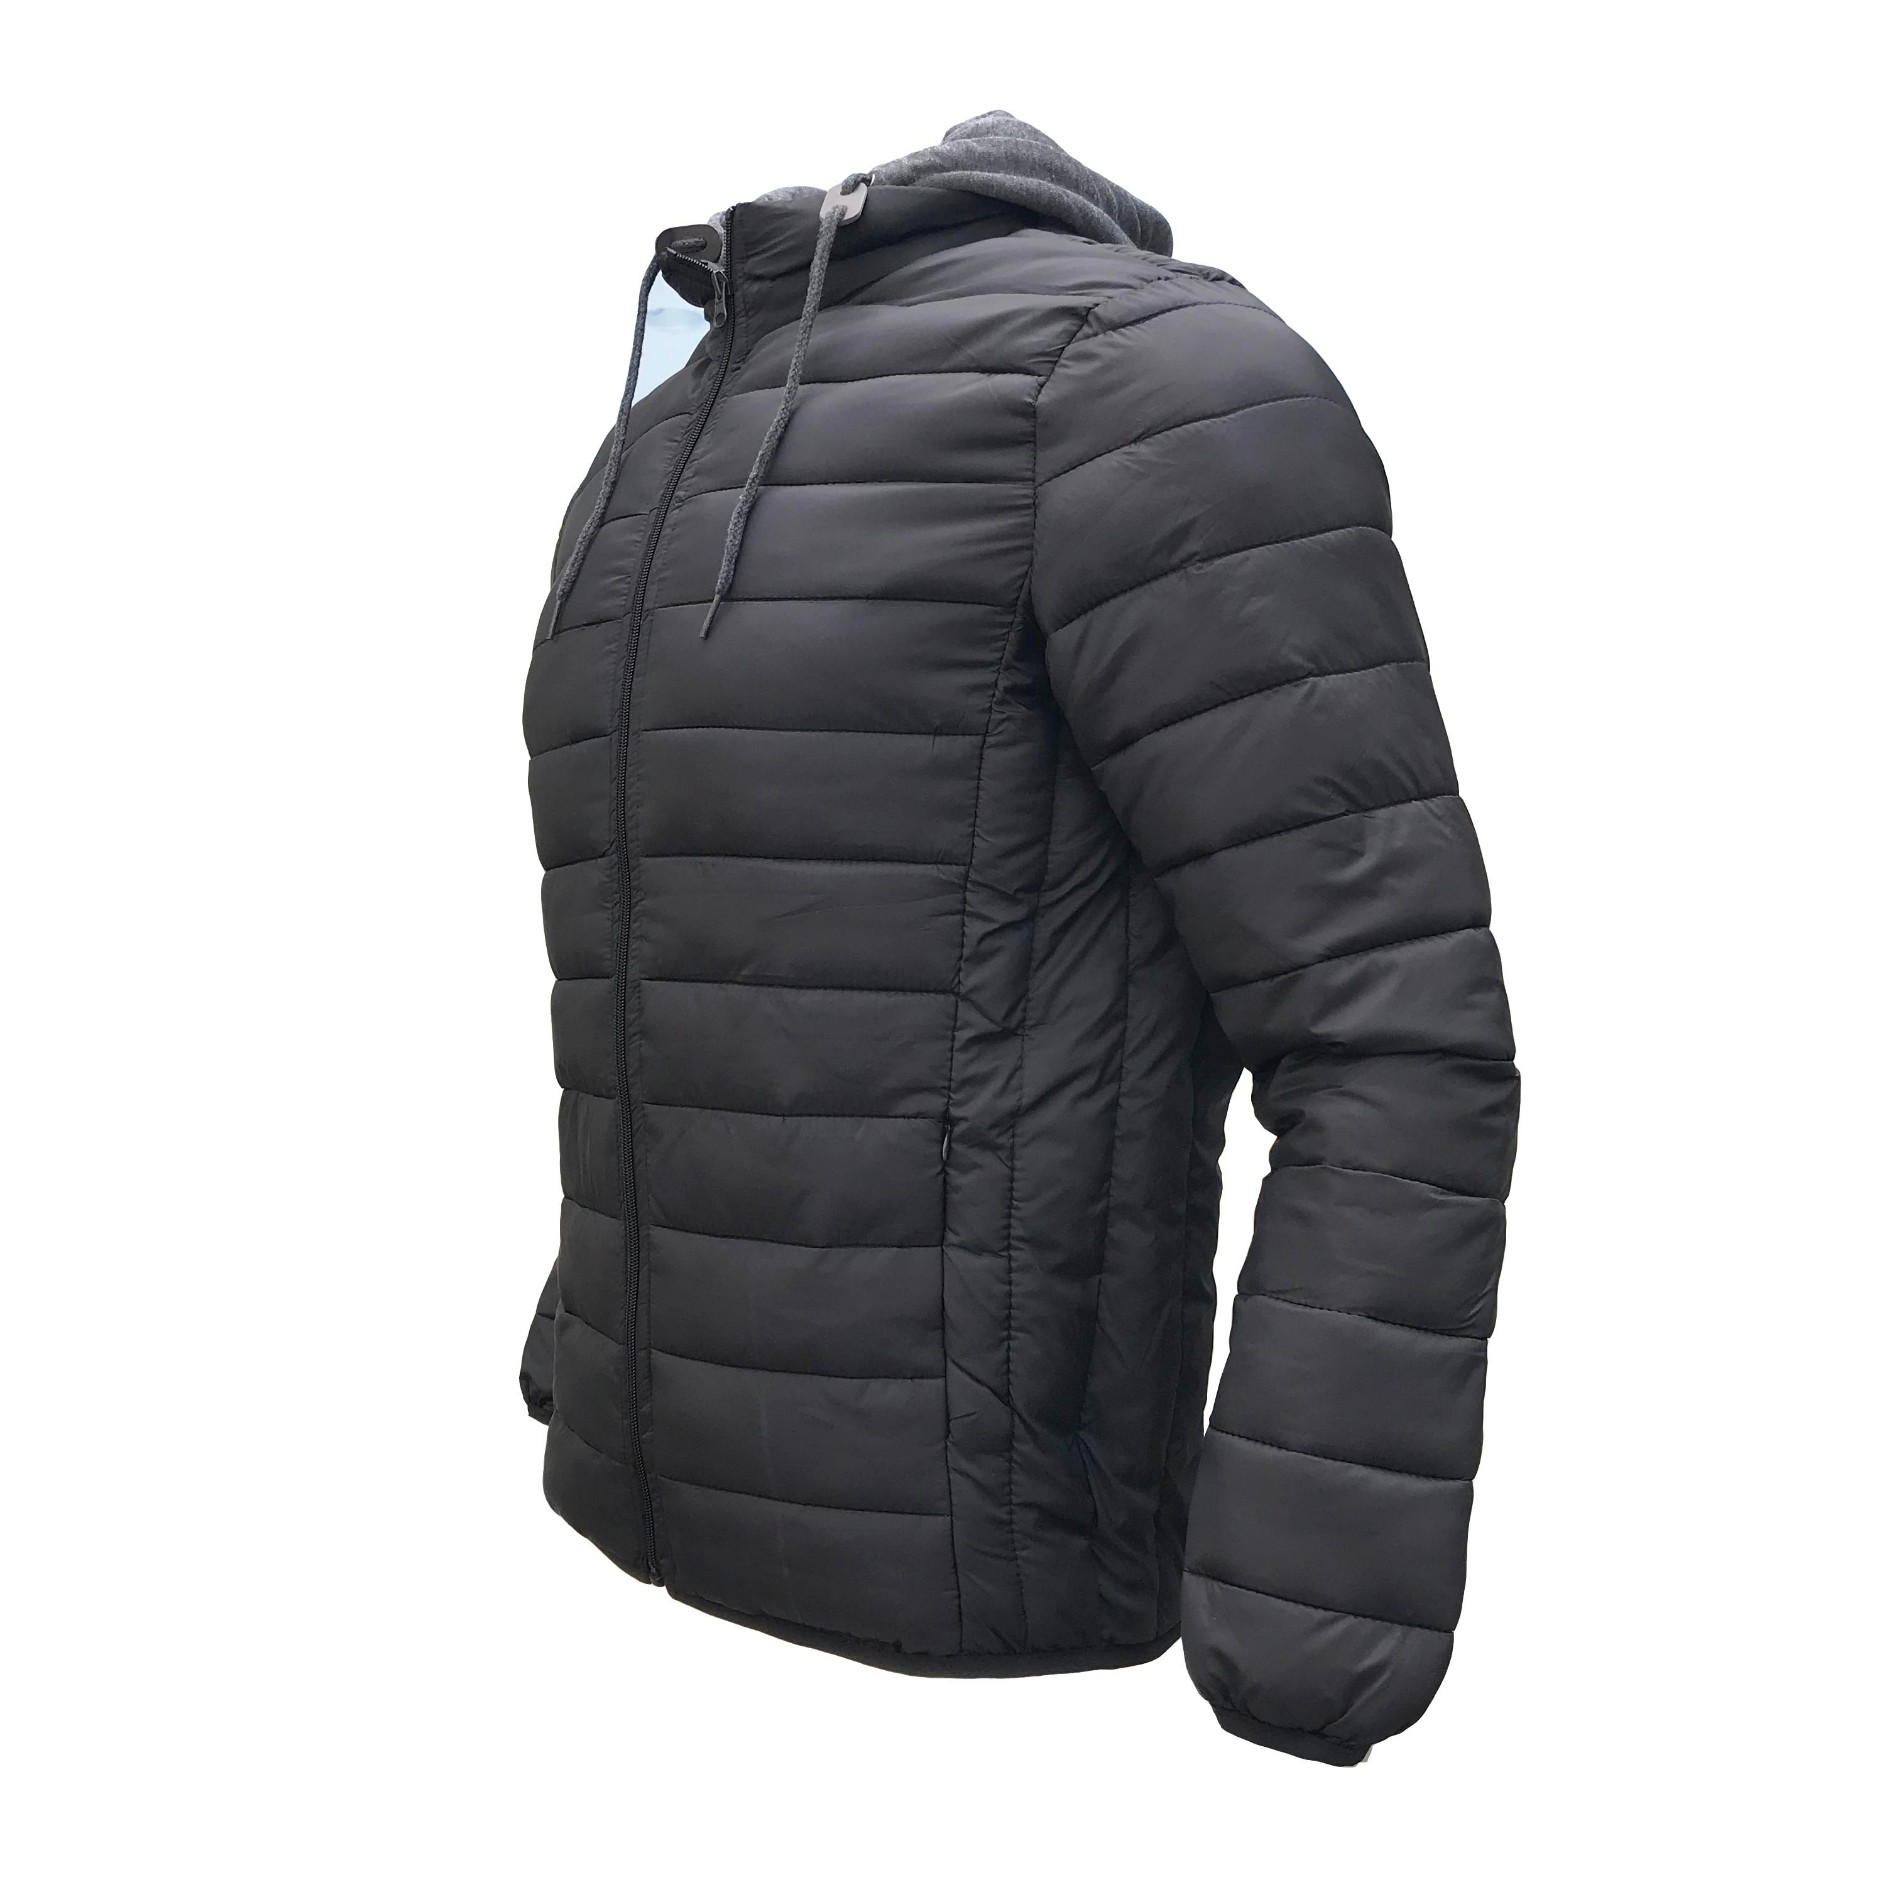 Men's High Quality Winter Jacket Mens Padded Coat With Hooded Manufacturers, Men's High Quality Winter Jacket Mens Padded Coat With Hooded Factory, Supply Men's High Quality Winter Jacket Mens Padded Coat With Hooded